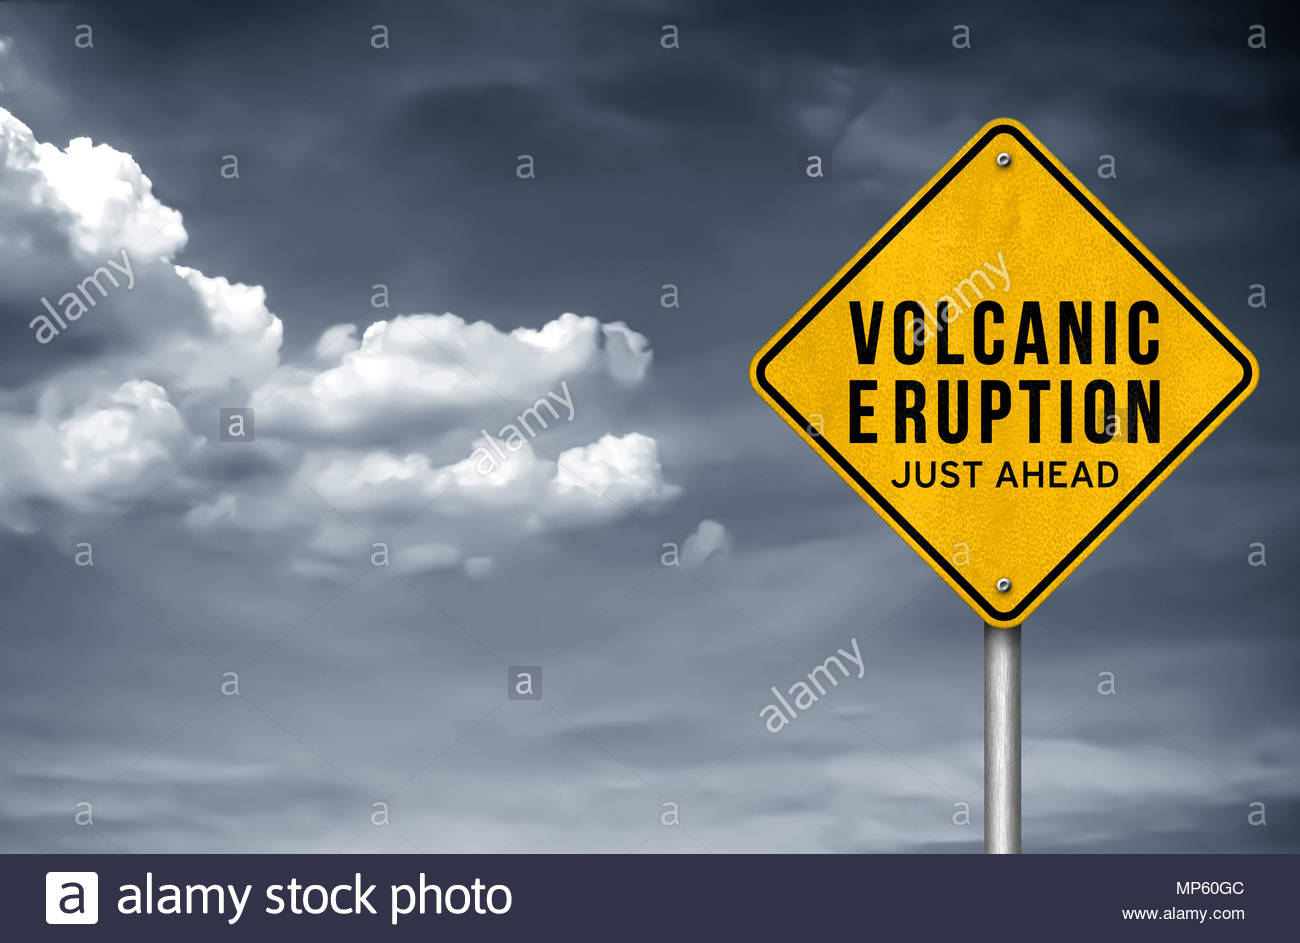 Volcanic Eruption just ahead - Stock Image